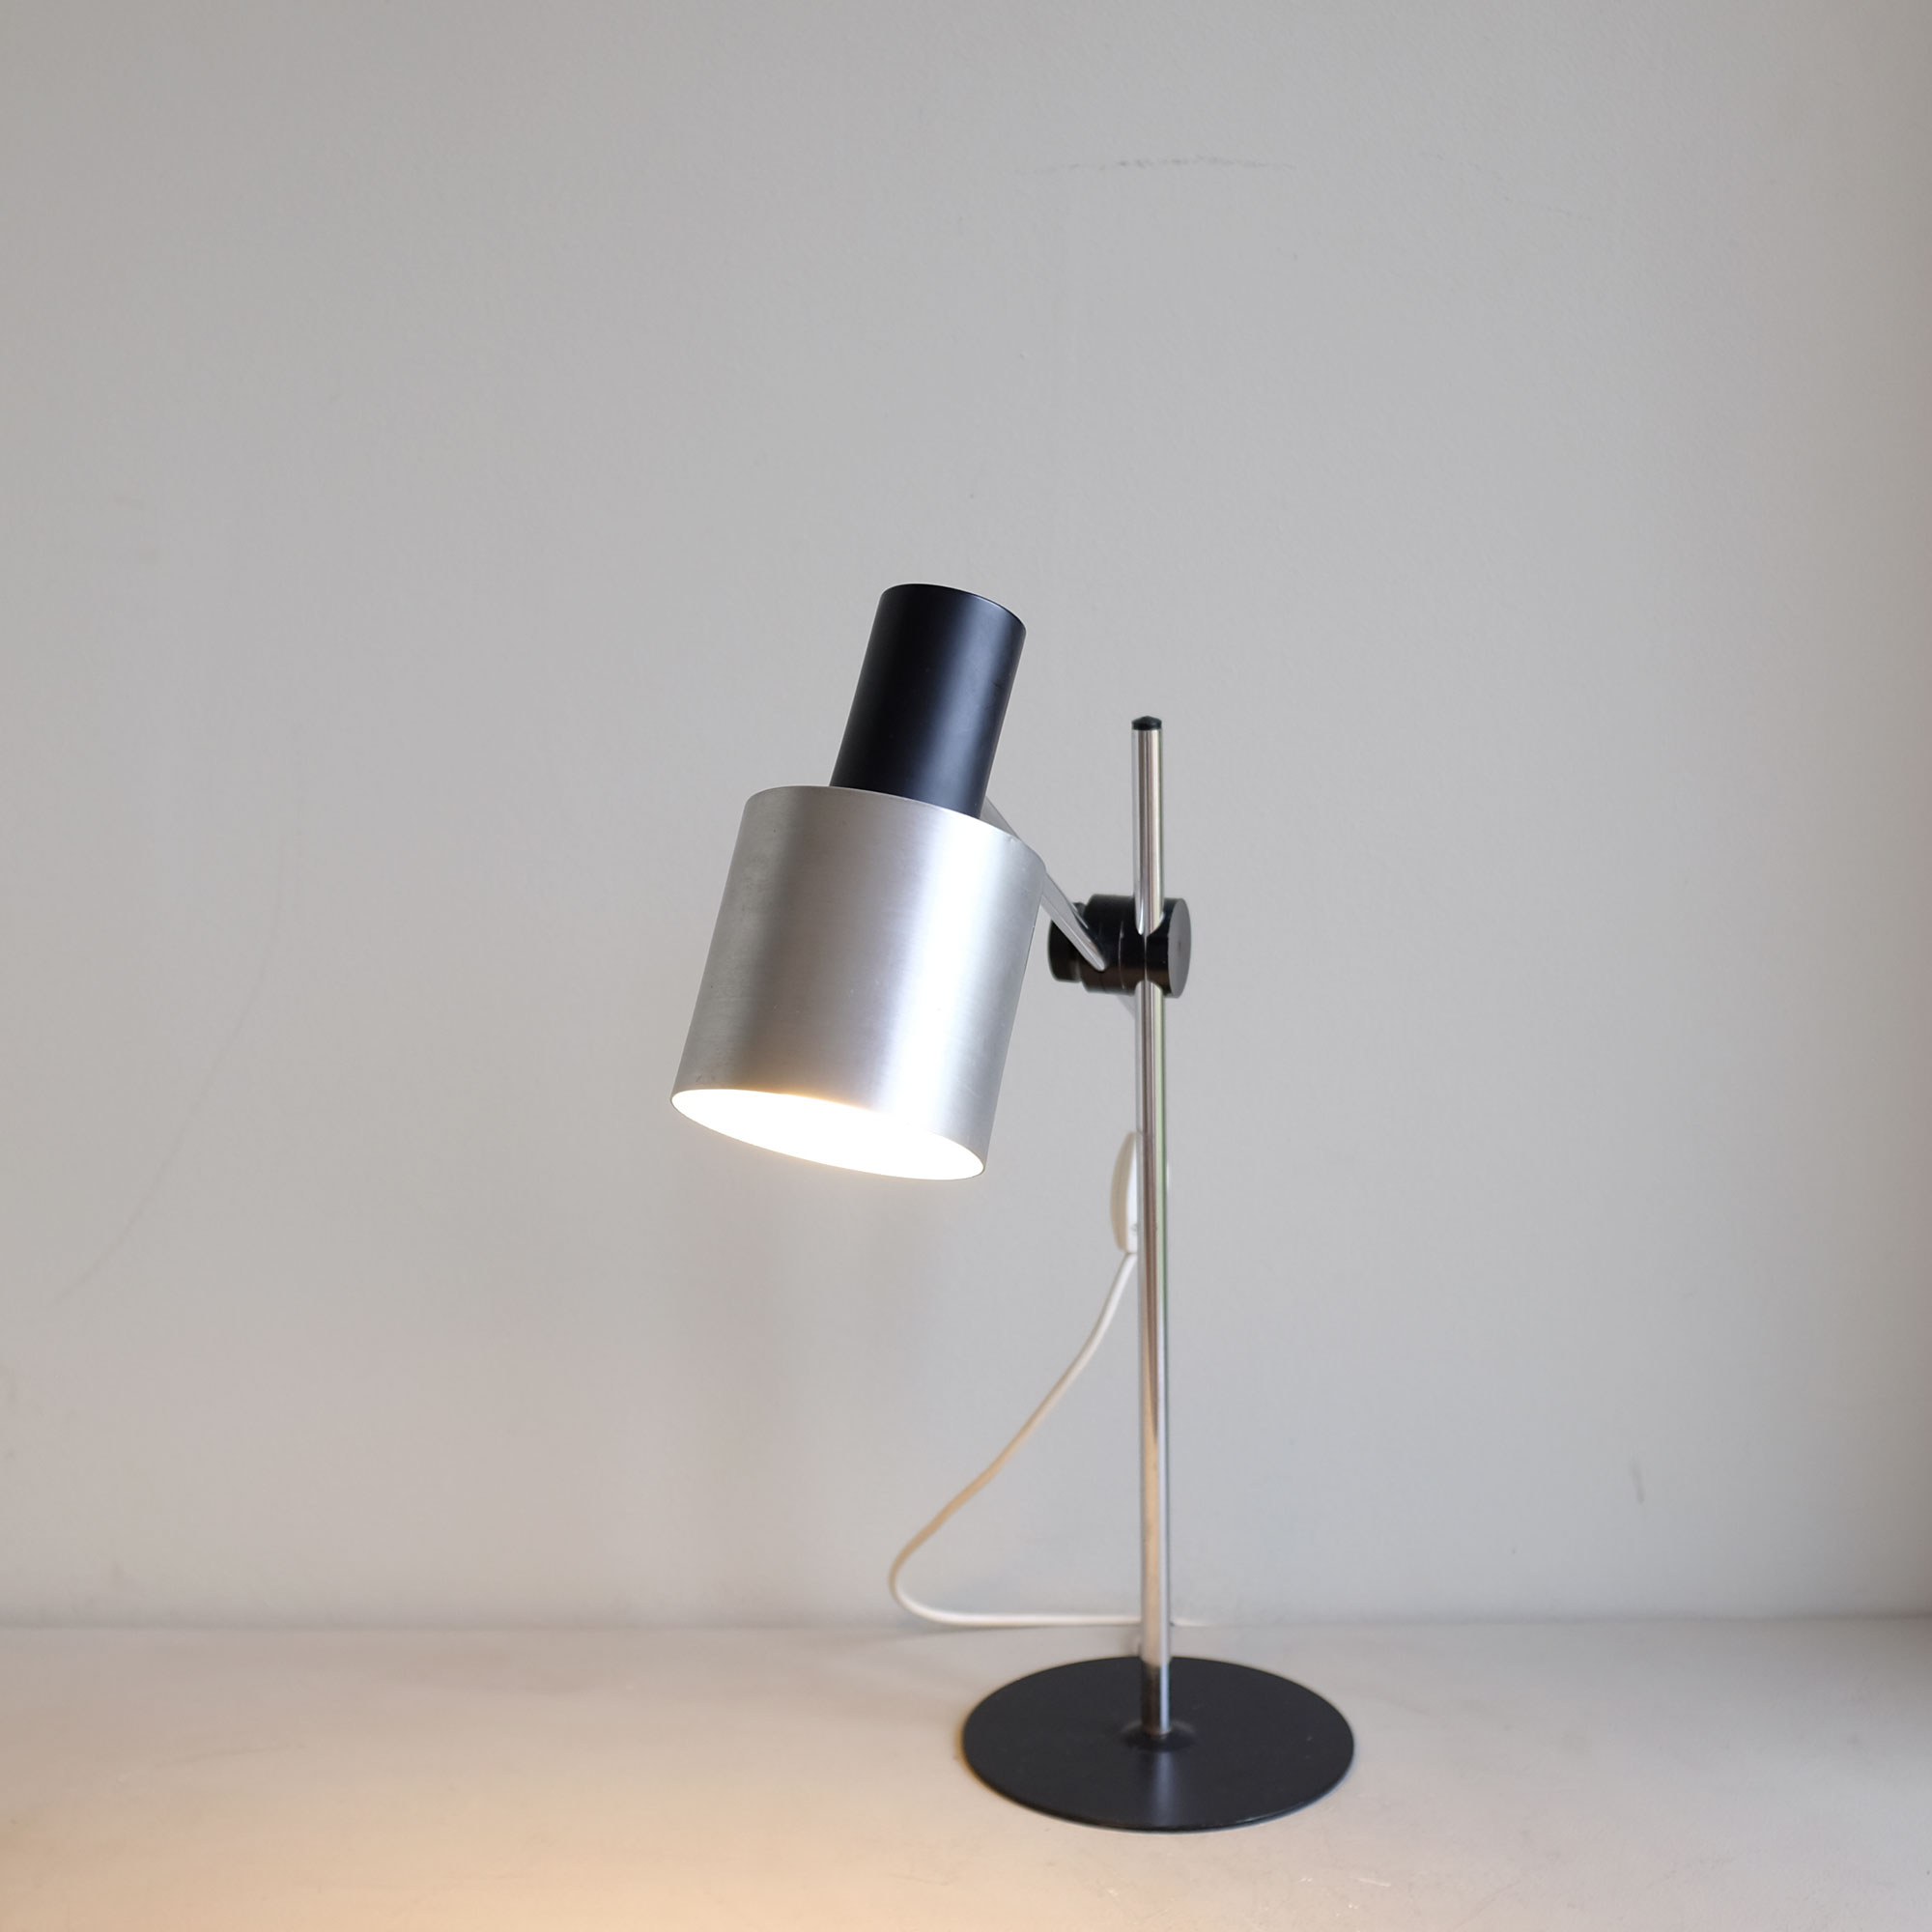 Vintage-Italian-Desk-Lamp-by-Prova-iii